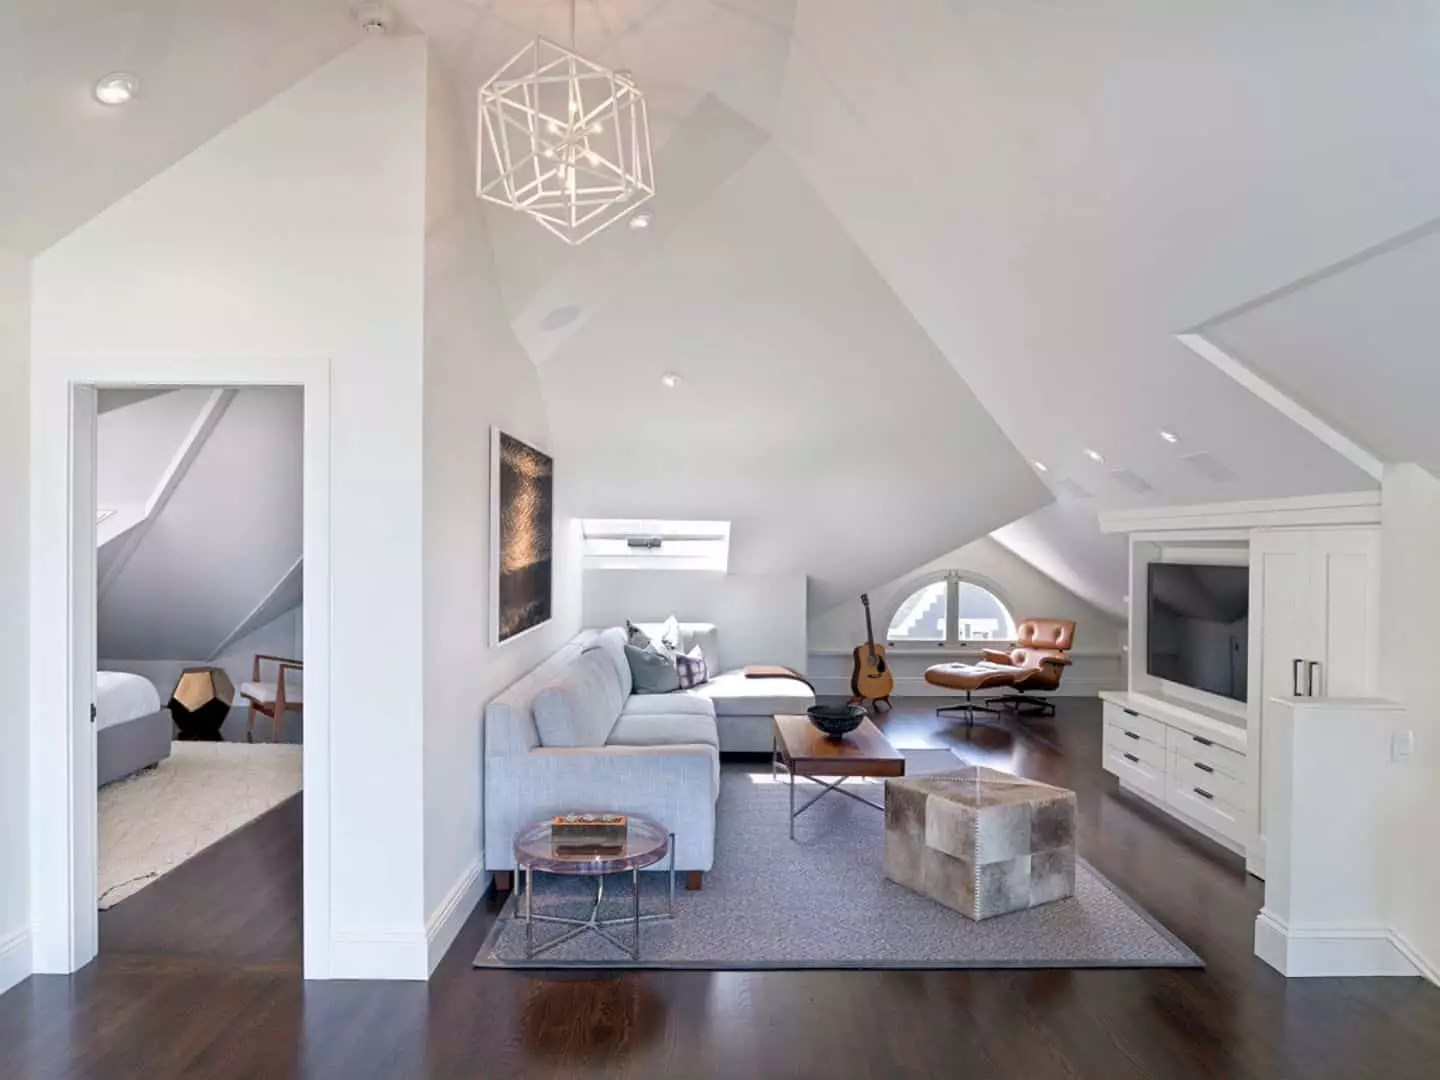 Pacific Heights: A Remodeled of Top Level Residence with Open and Modern Interior Design